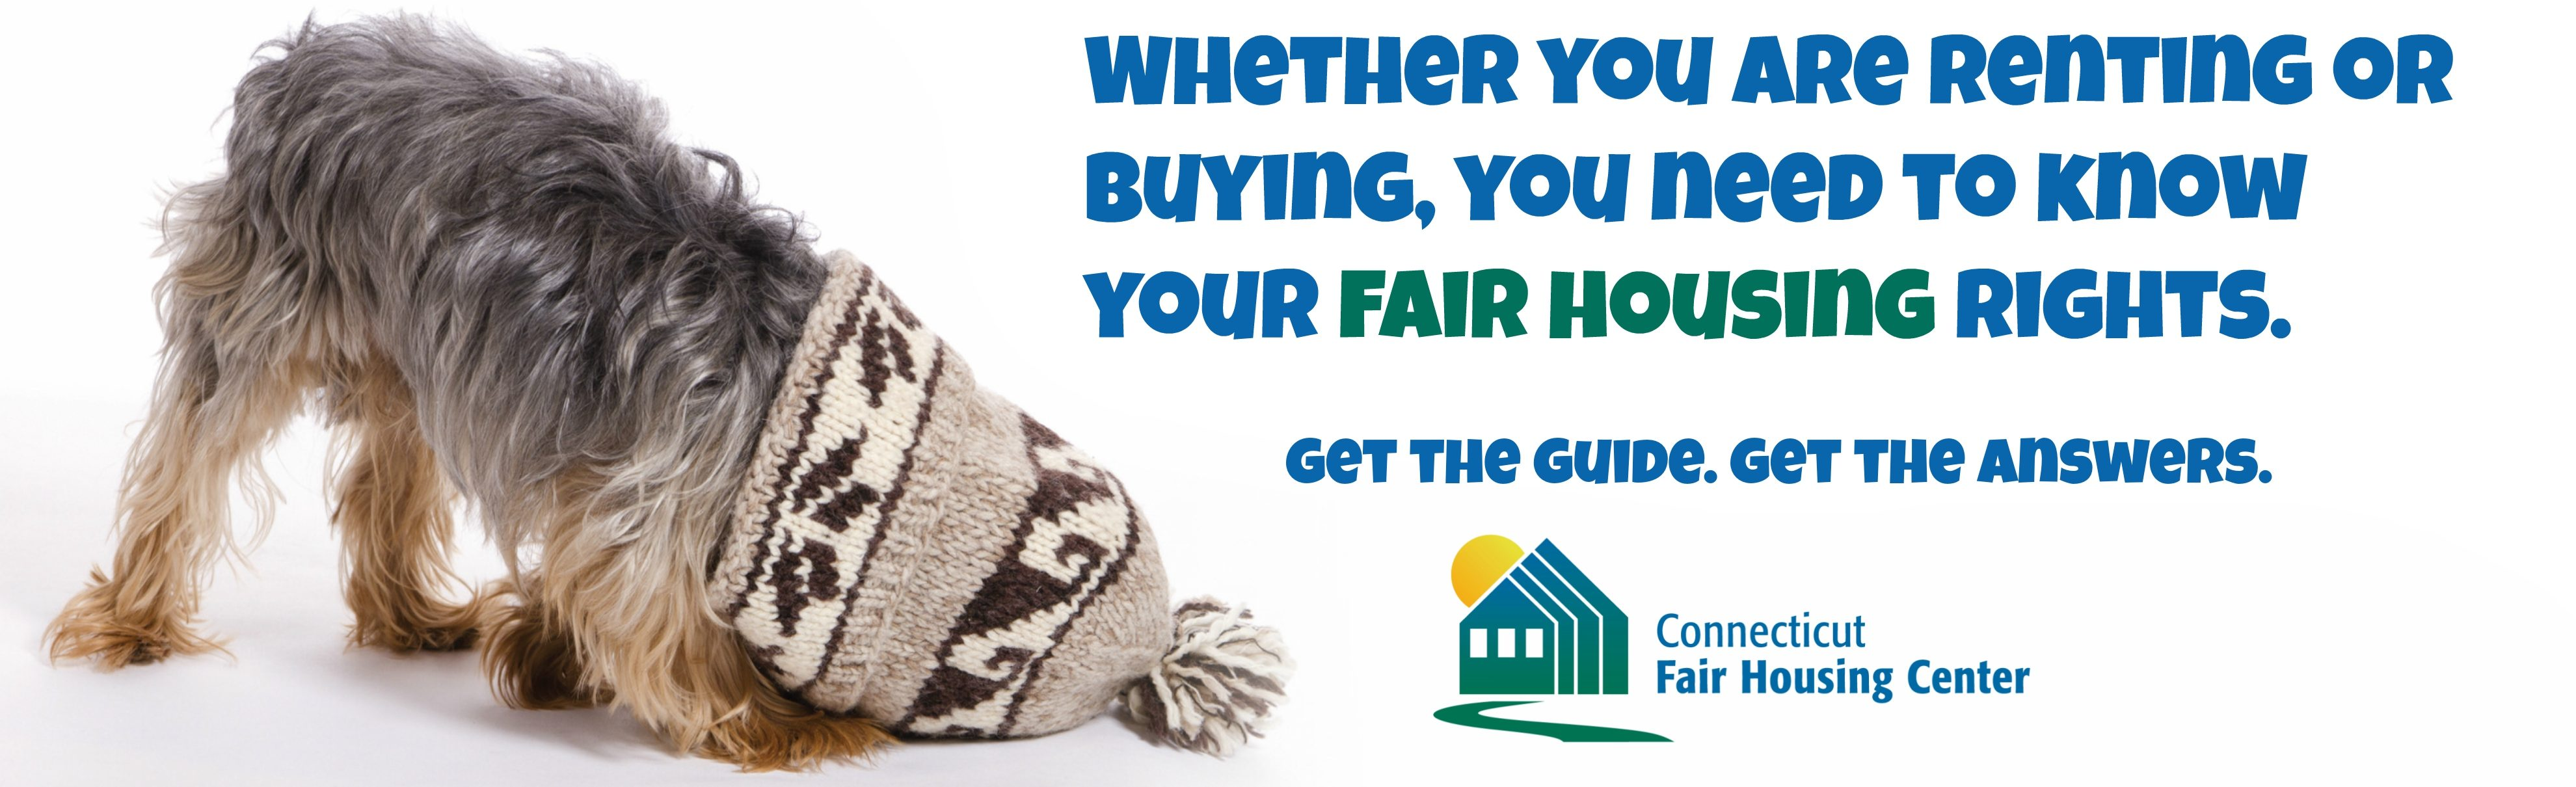 Whether you are renting or buying, you need to know your fair housing rights.